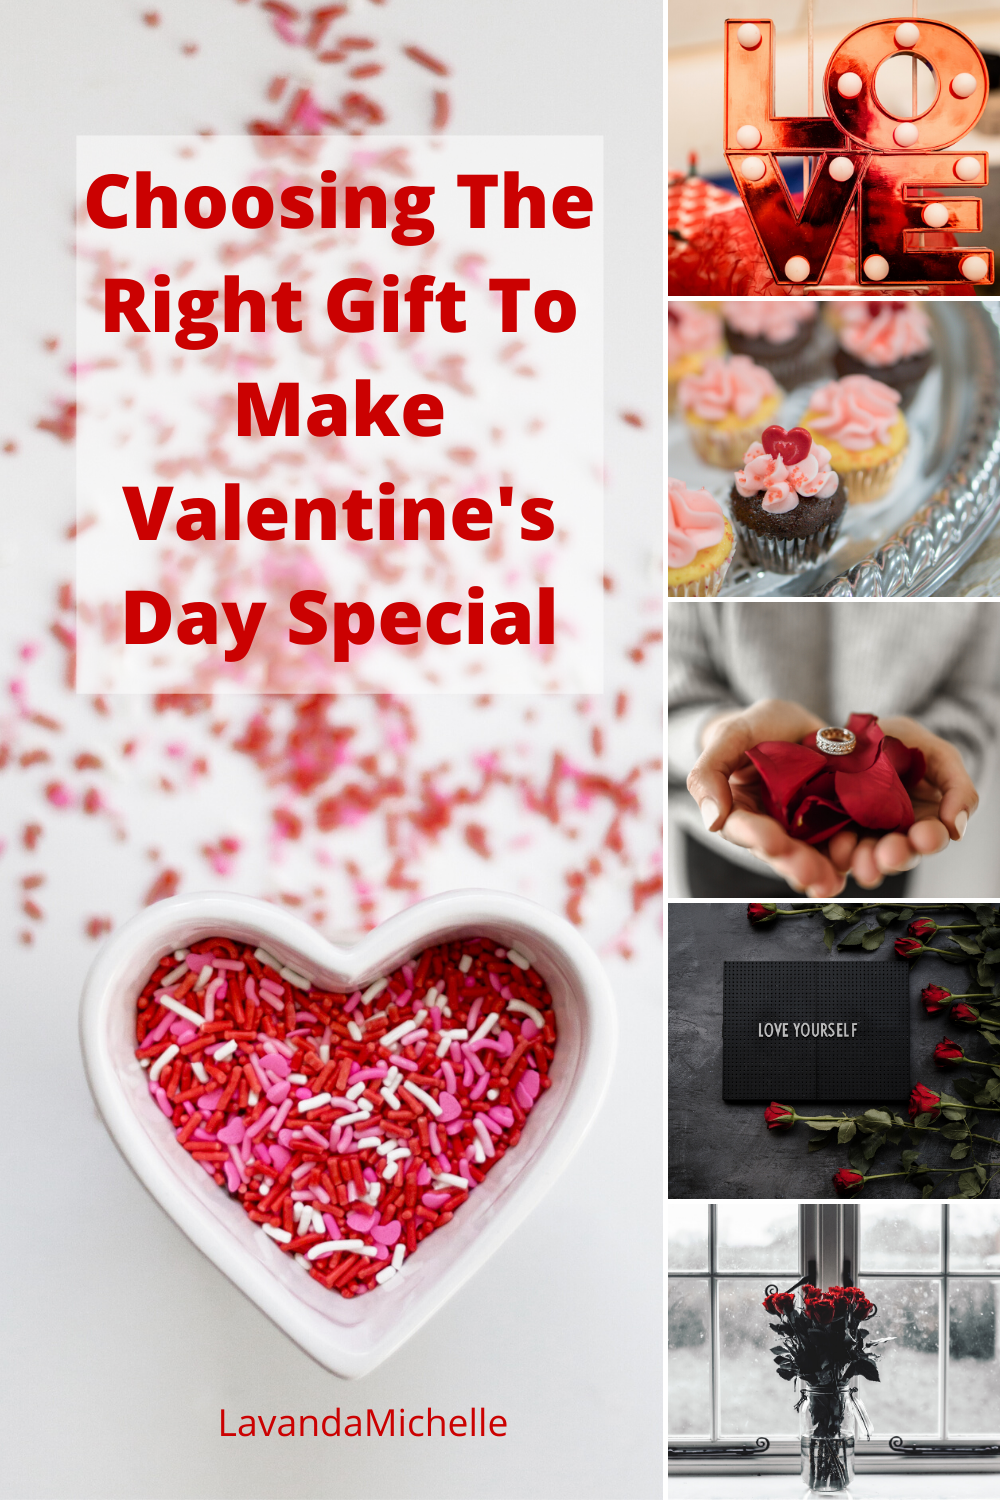 Choosing The Right Gift To Make Valentine's Day Special